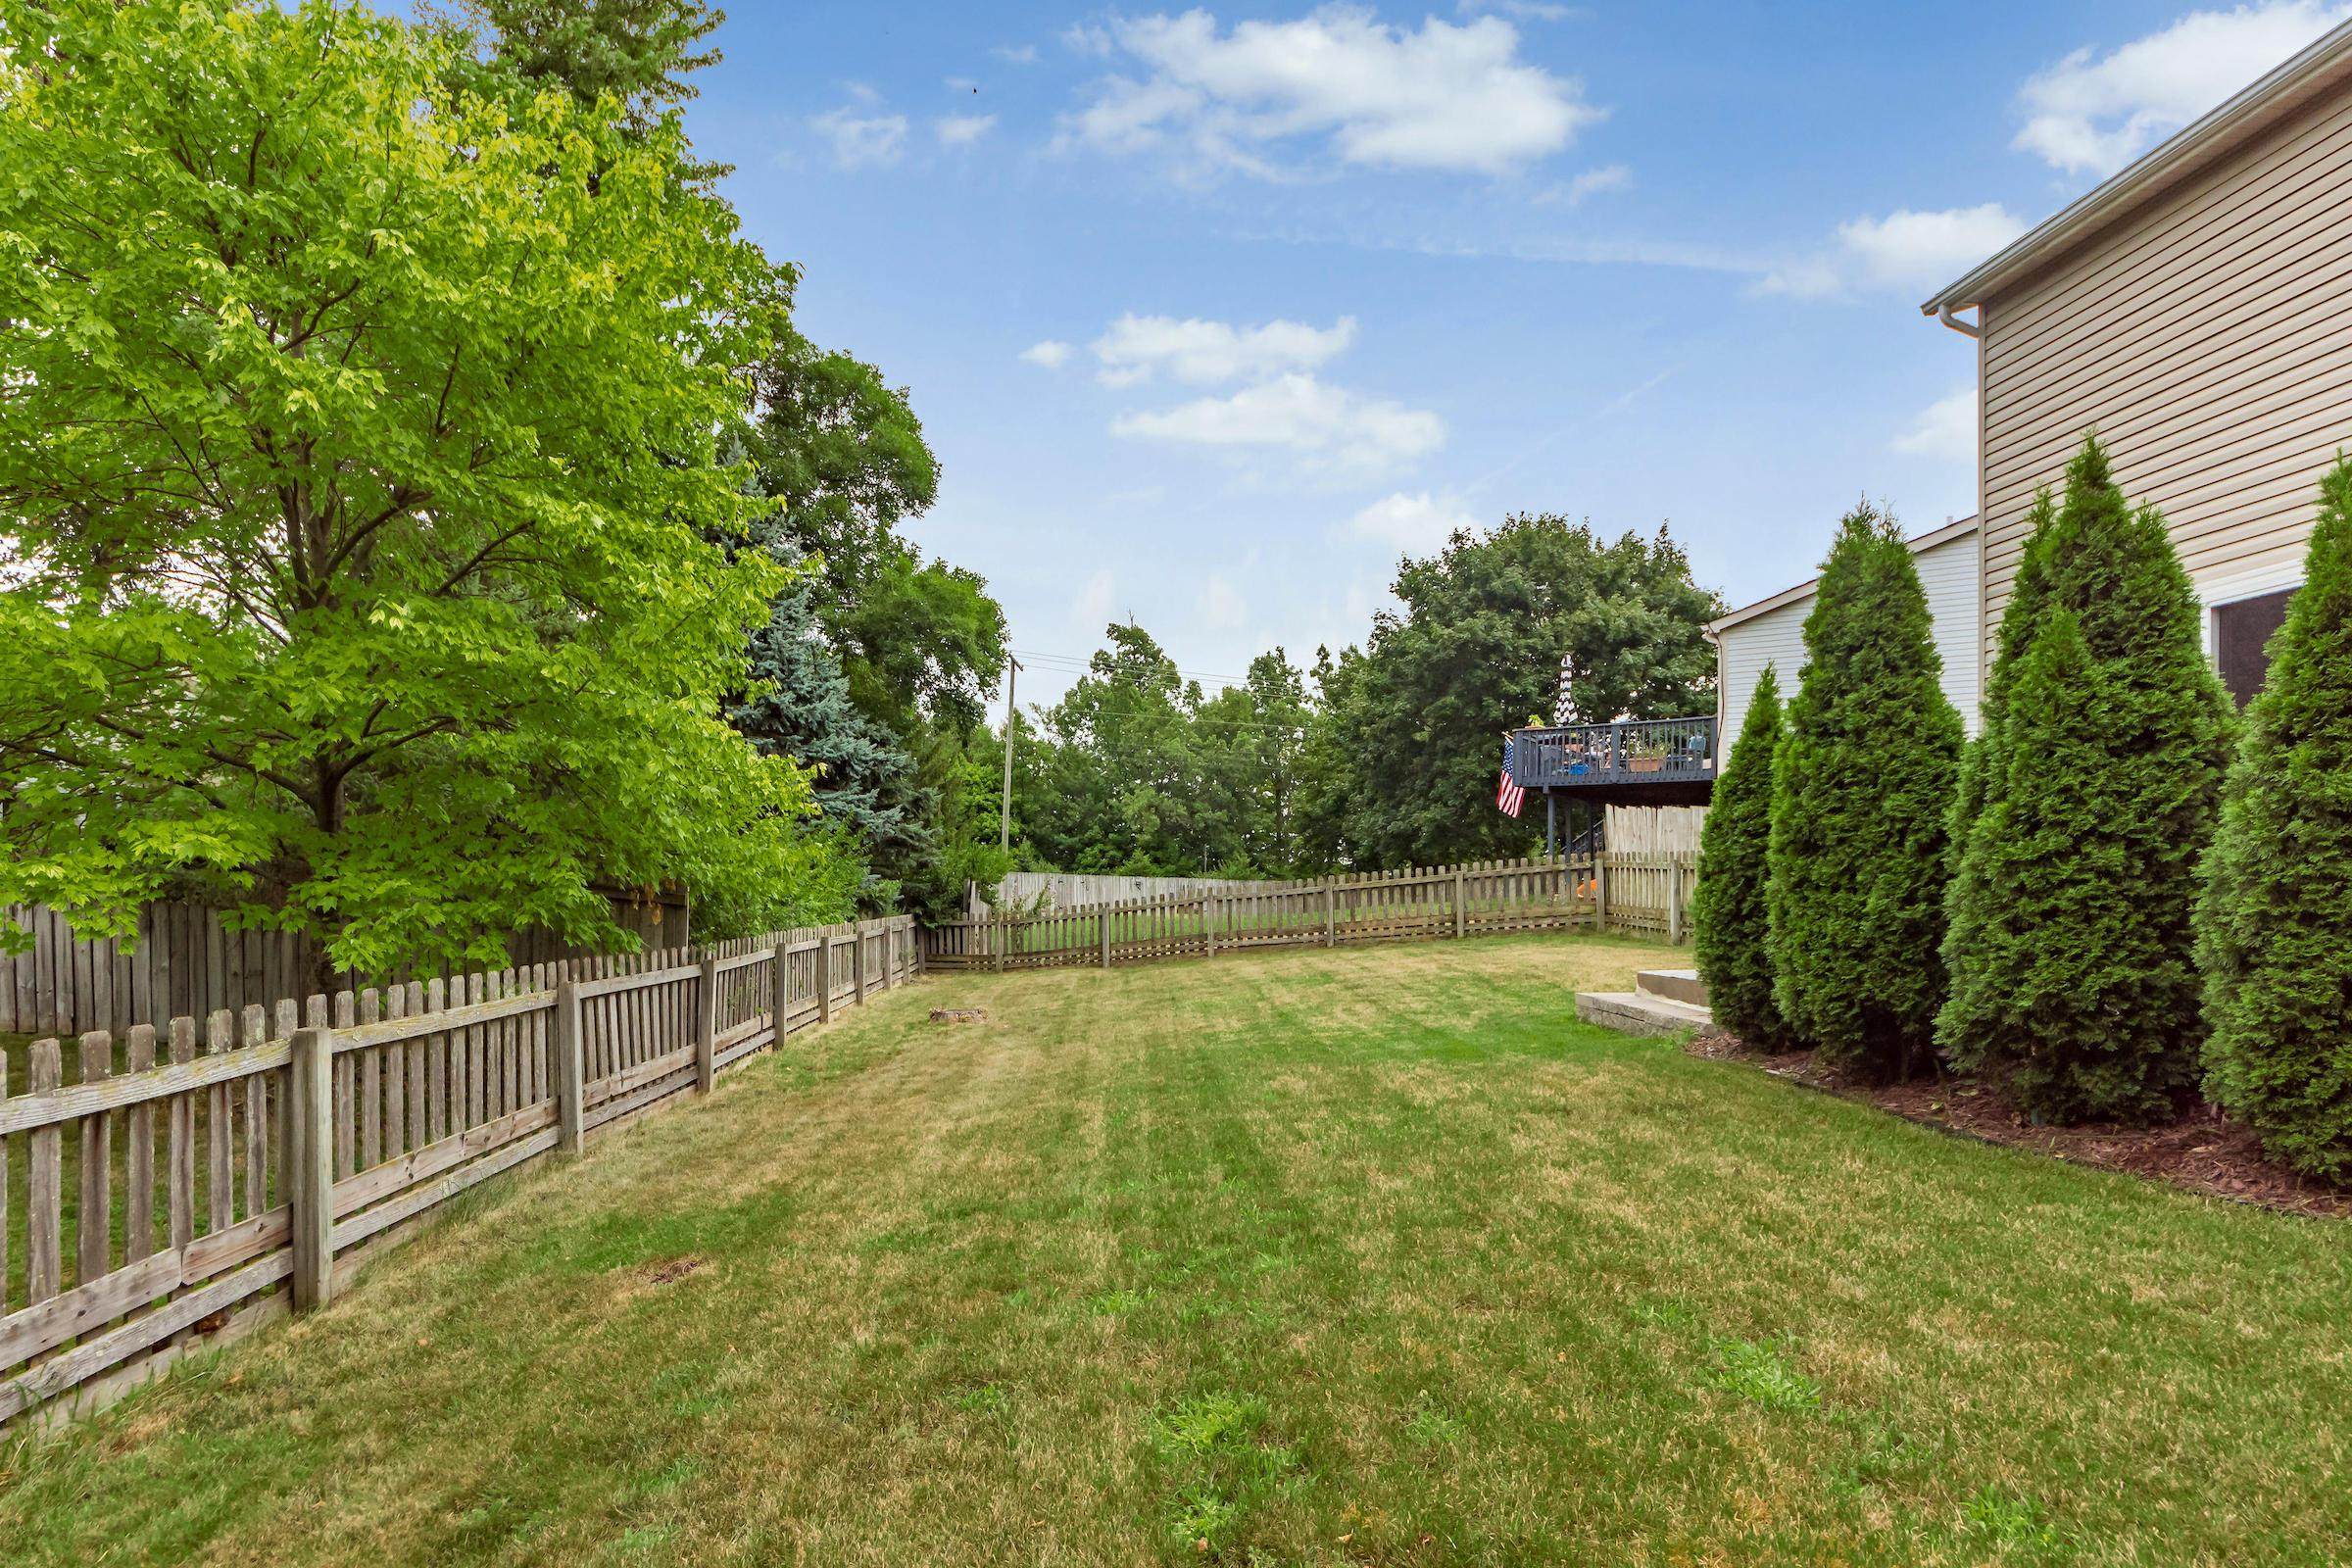 4894 Silver Bow Drive, Hilliard, Ohio 43026, 3 Bedrooms Bedrooms, ,3 BathroomsBathrooms,Residential,For Sale,Silver Bow,220025588